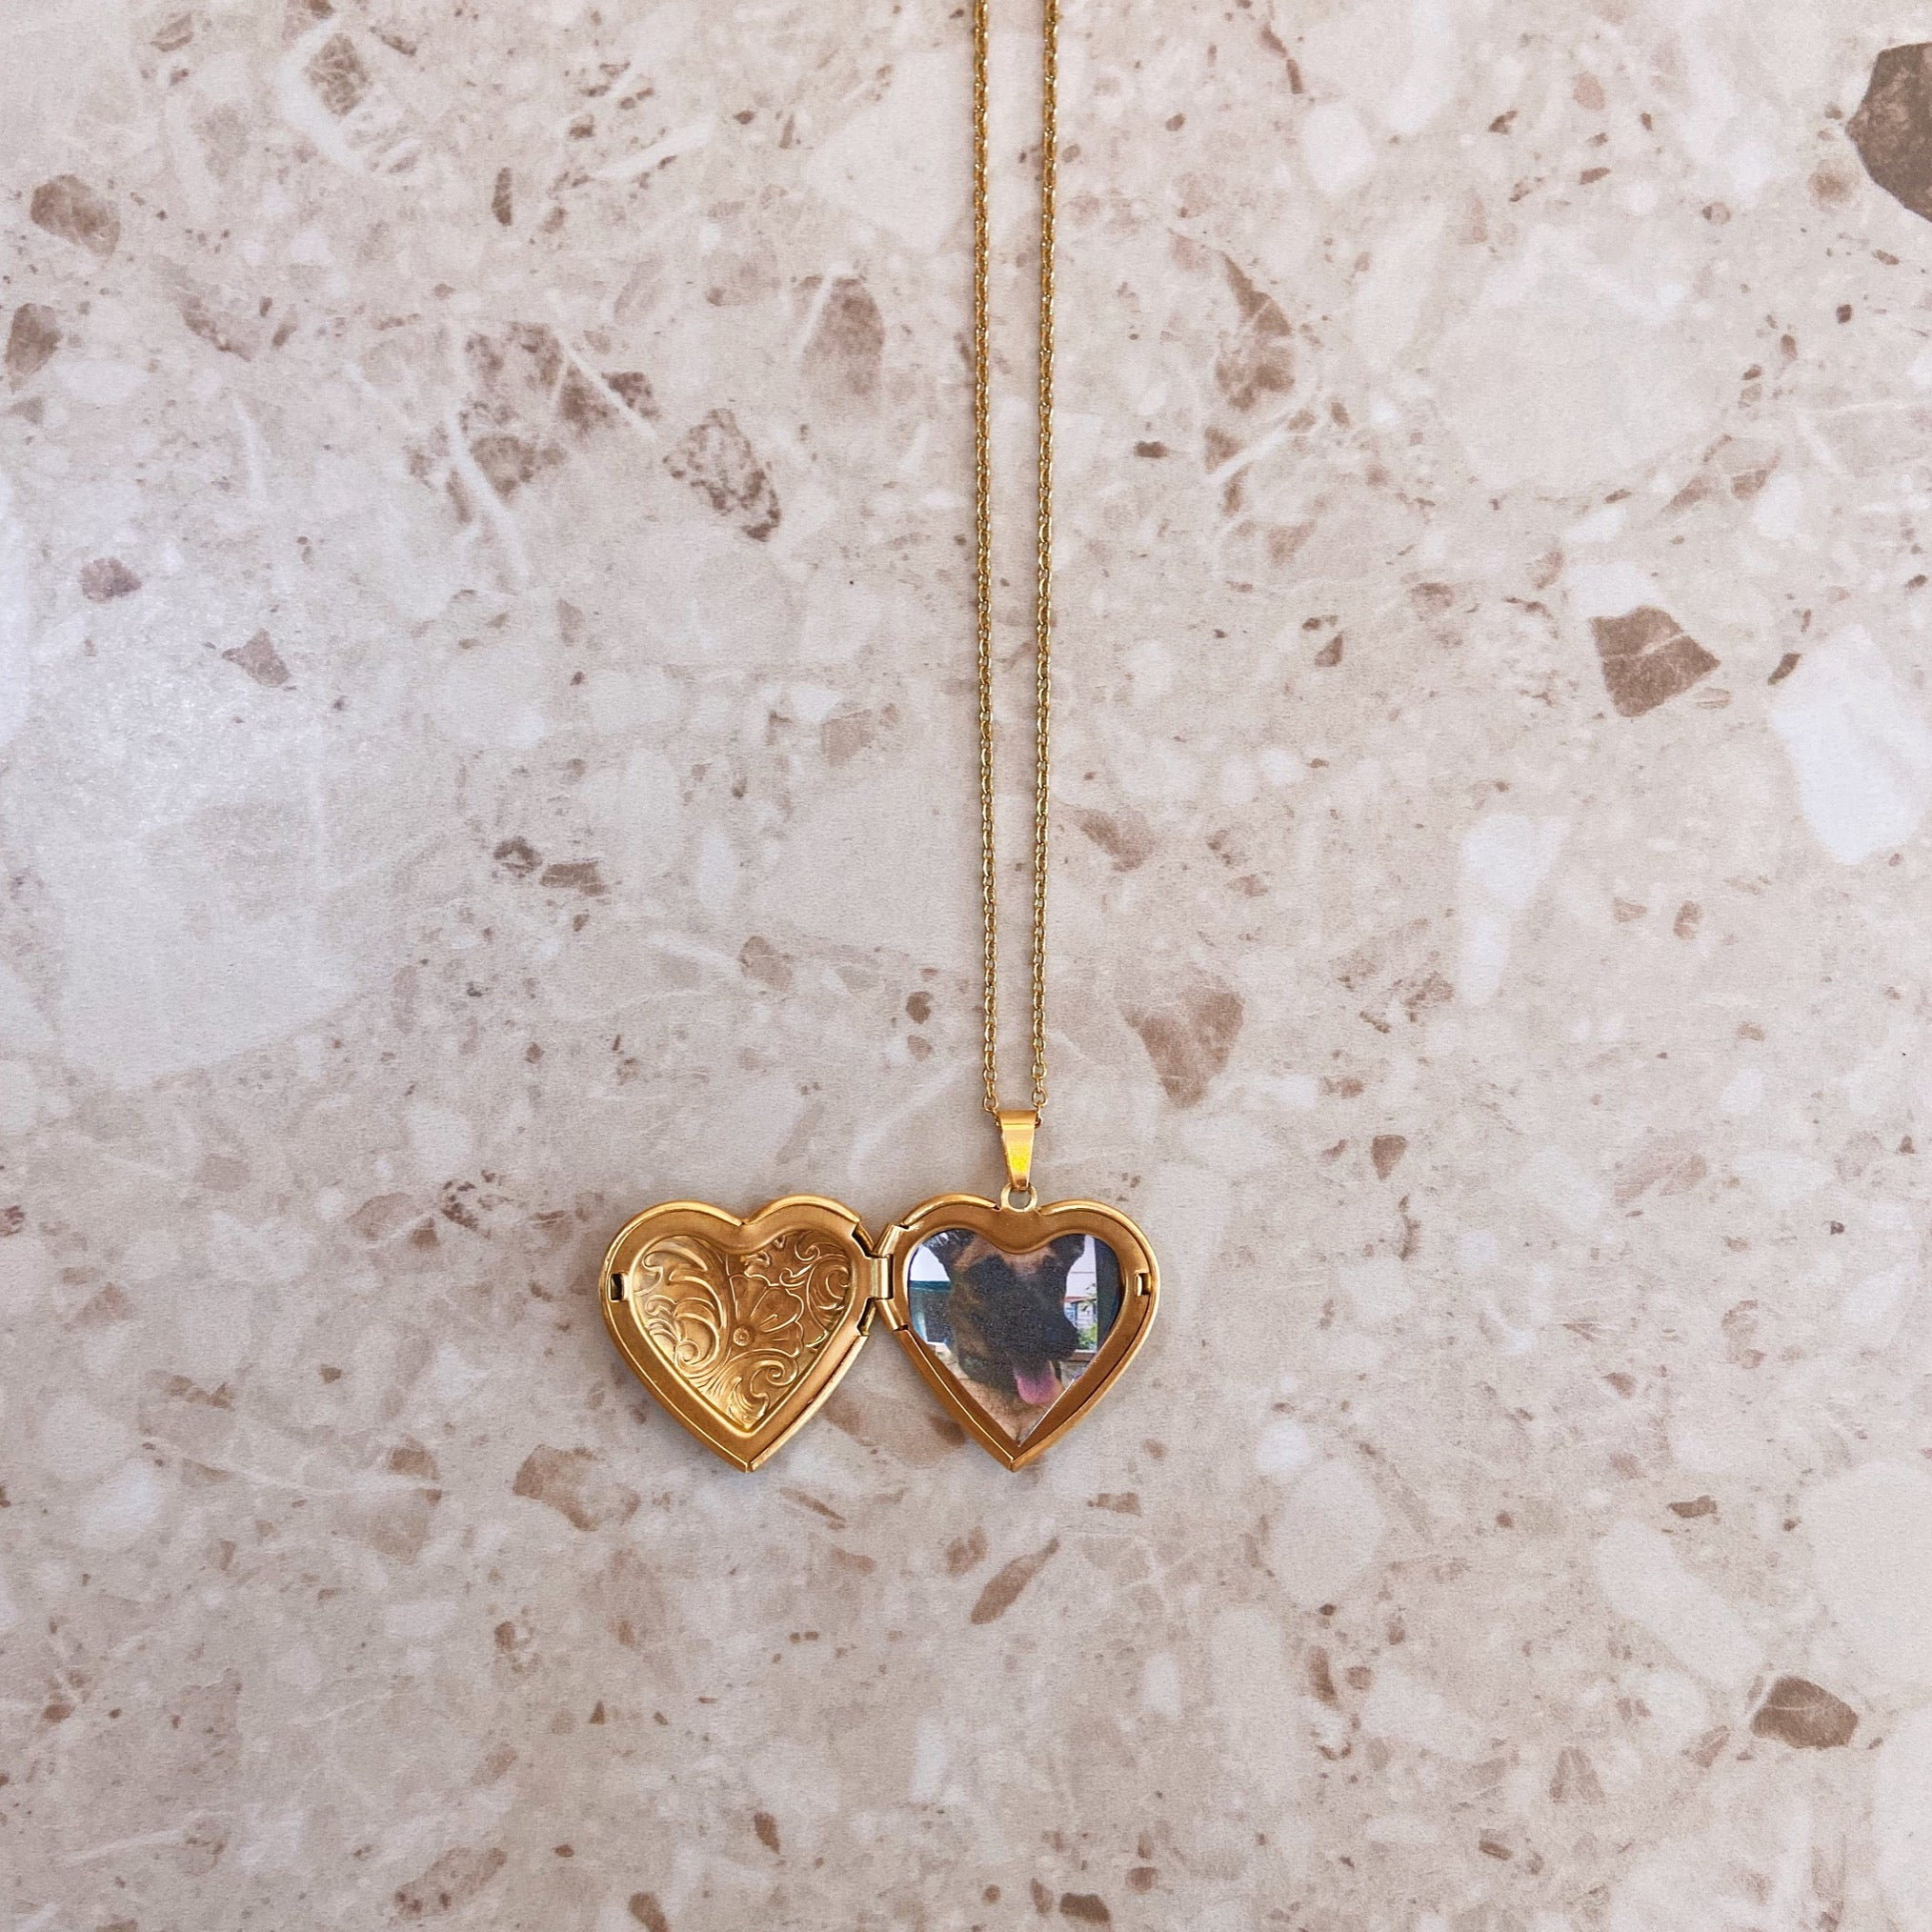 Floral Heart Love Locket + FREE photo print out